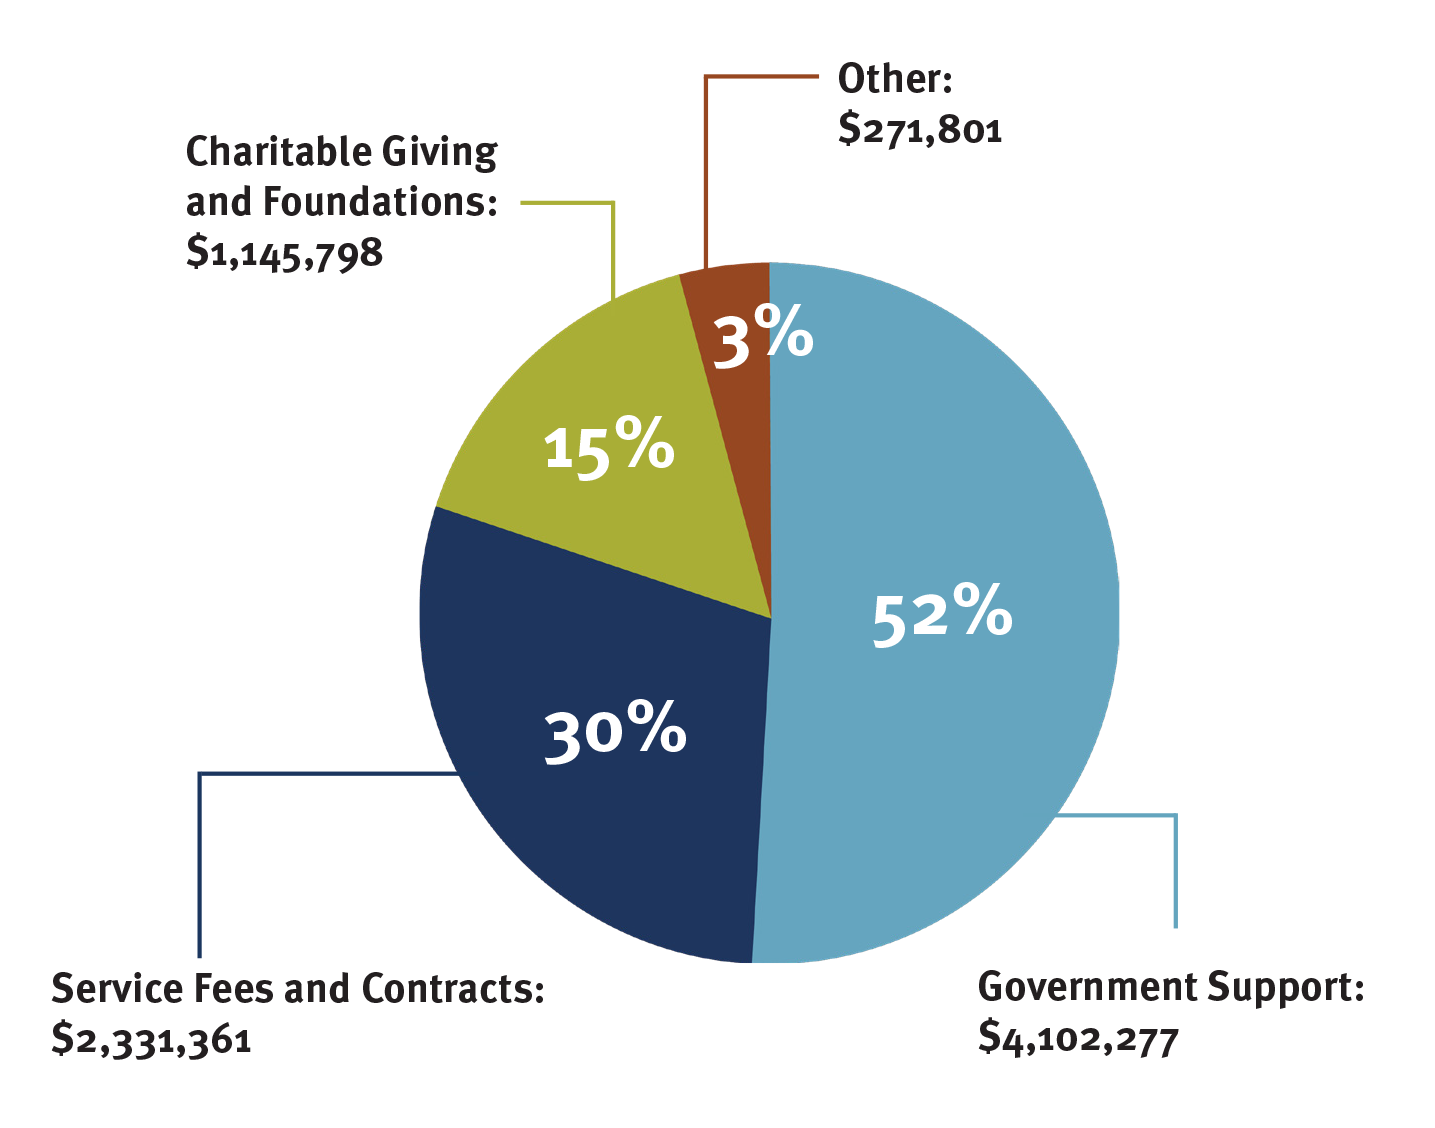 A pie chart with the following sections:  Government Support  ($4,102,277 / 52%),  Service Fees and Contracts  ($2,331,361 / 30%),  Charitable Giving and Foundations  ($1,145,798 / 15%),  Other  ($271,801 / 3%)